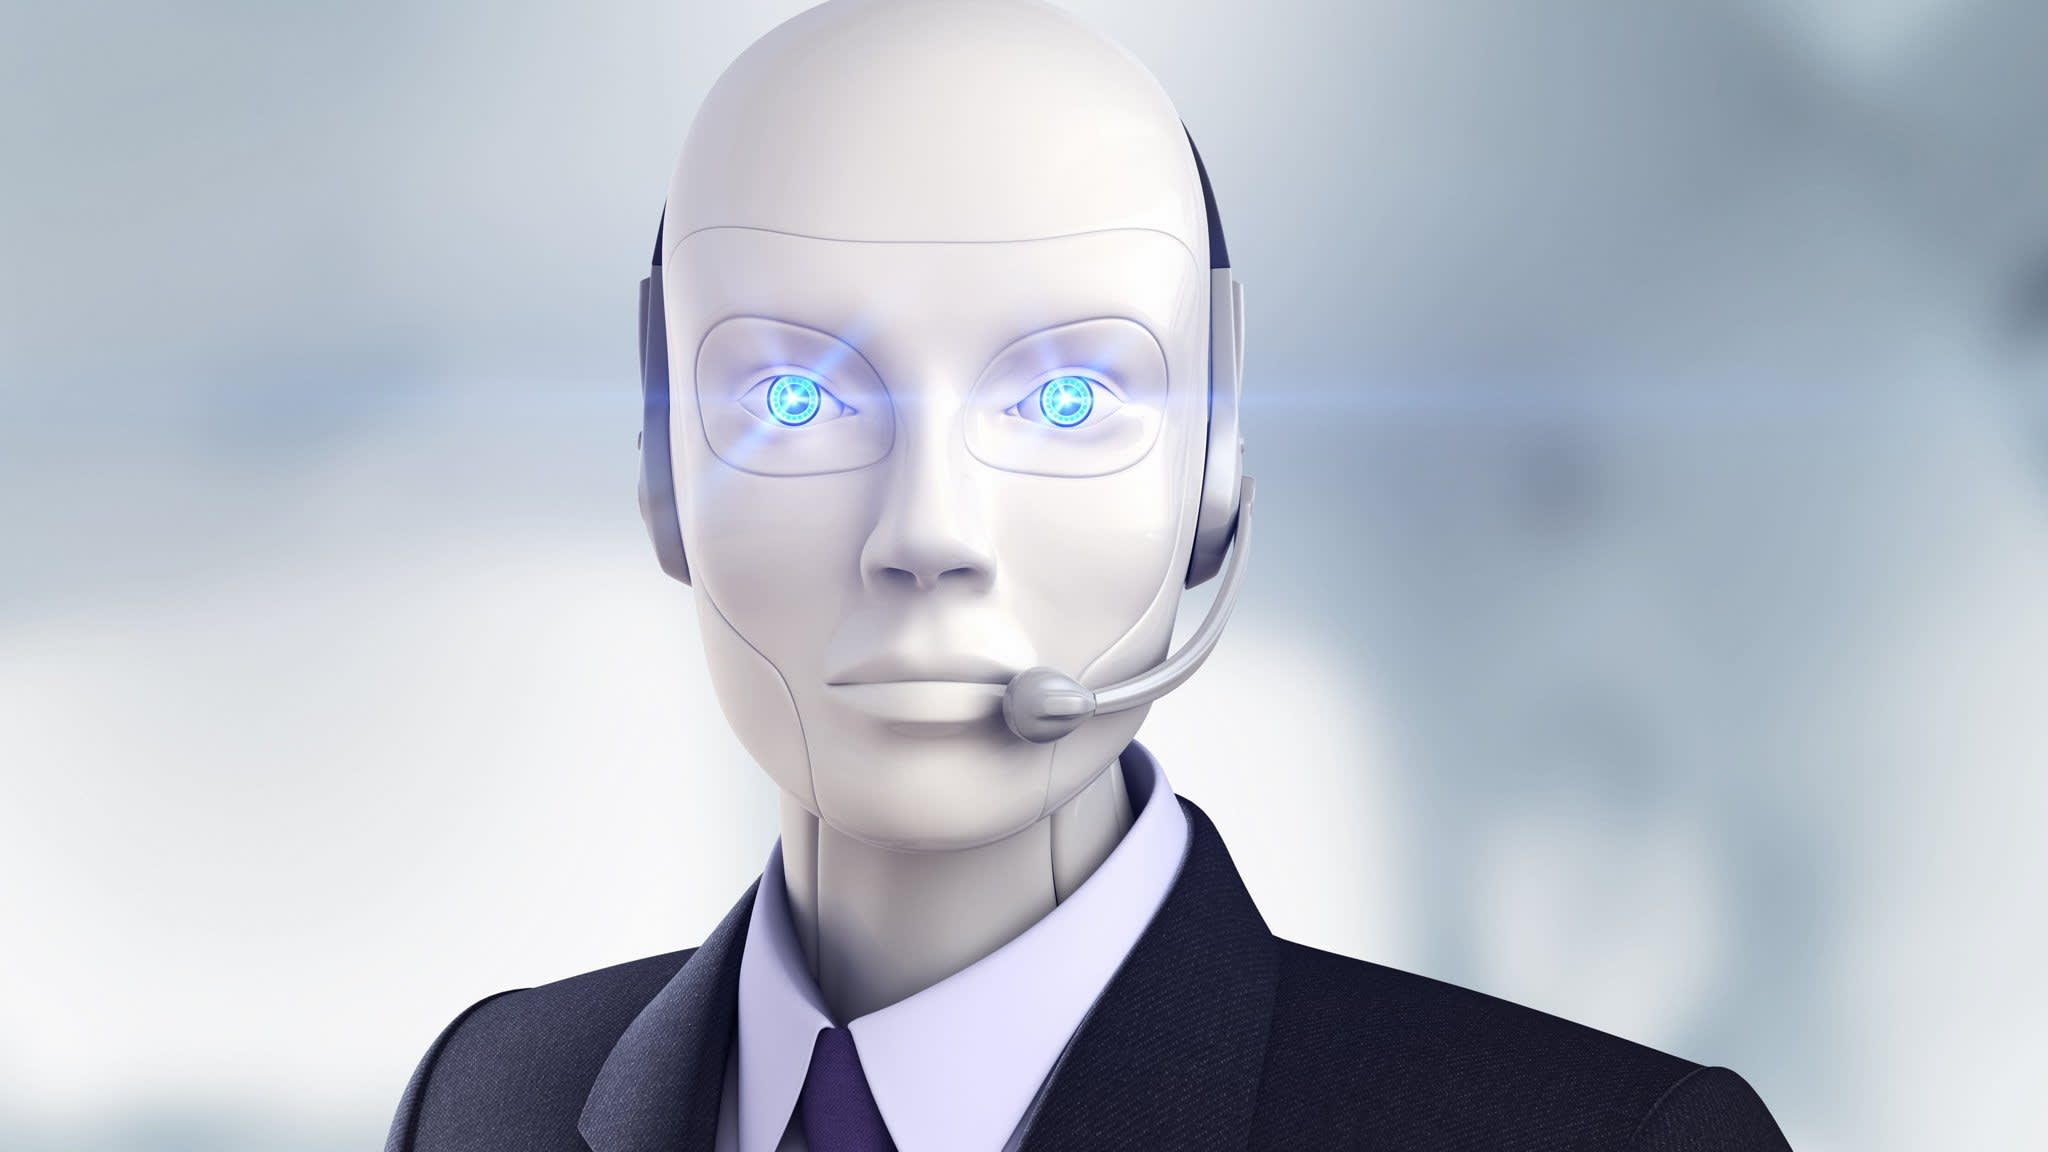 Legal firms unleash office automatons | Financial Times